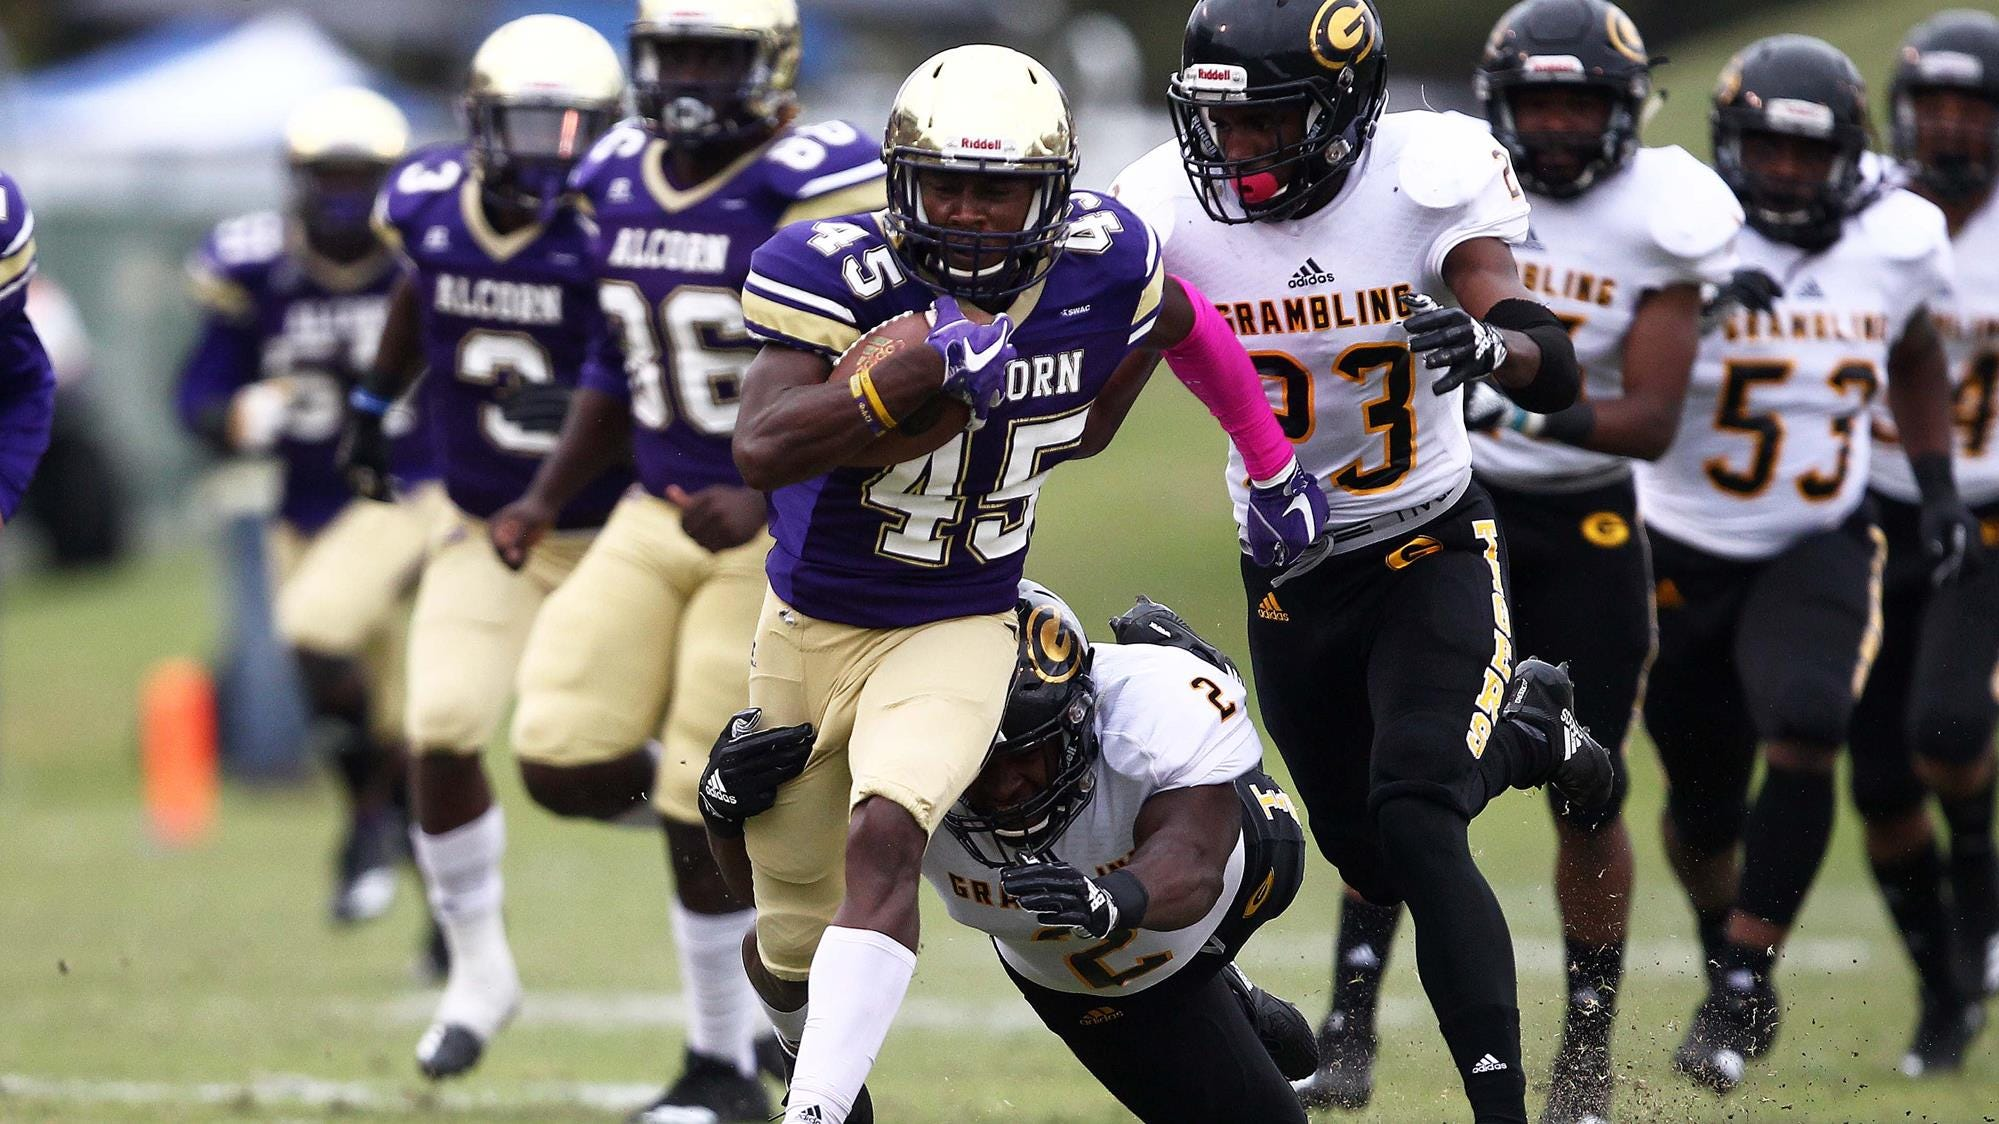 Alcorn State's Javen Morrison returns a kickoff 60 yards against Grambling State on Saturday.